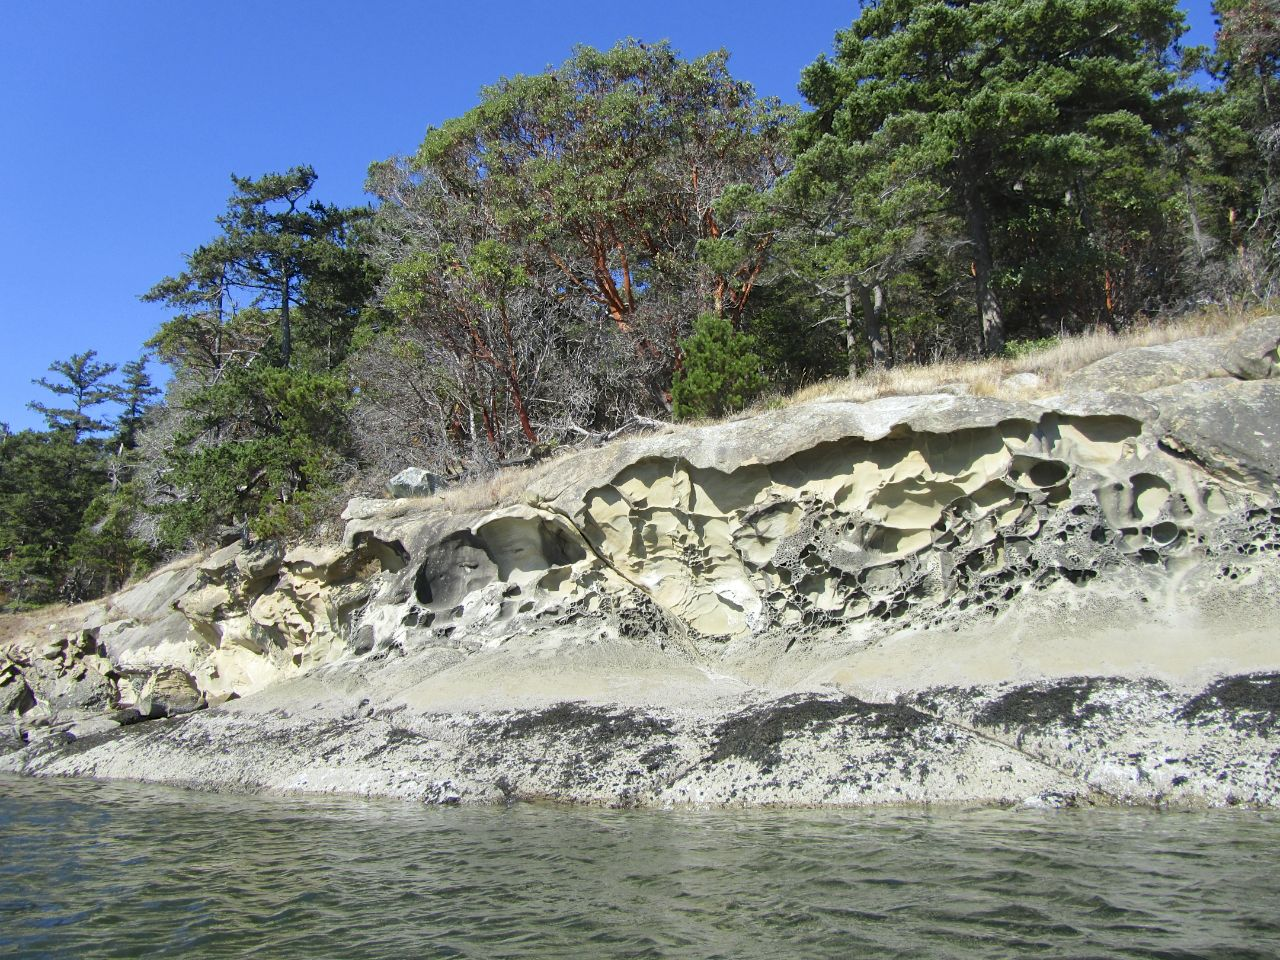 Thesceneryon Sucia (or all the Gulf Islands for that matter) is amazing. The eroded sandstone and arbutus tress make for spectacular sites as you tour the islands.